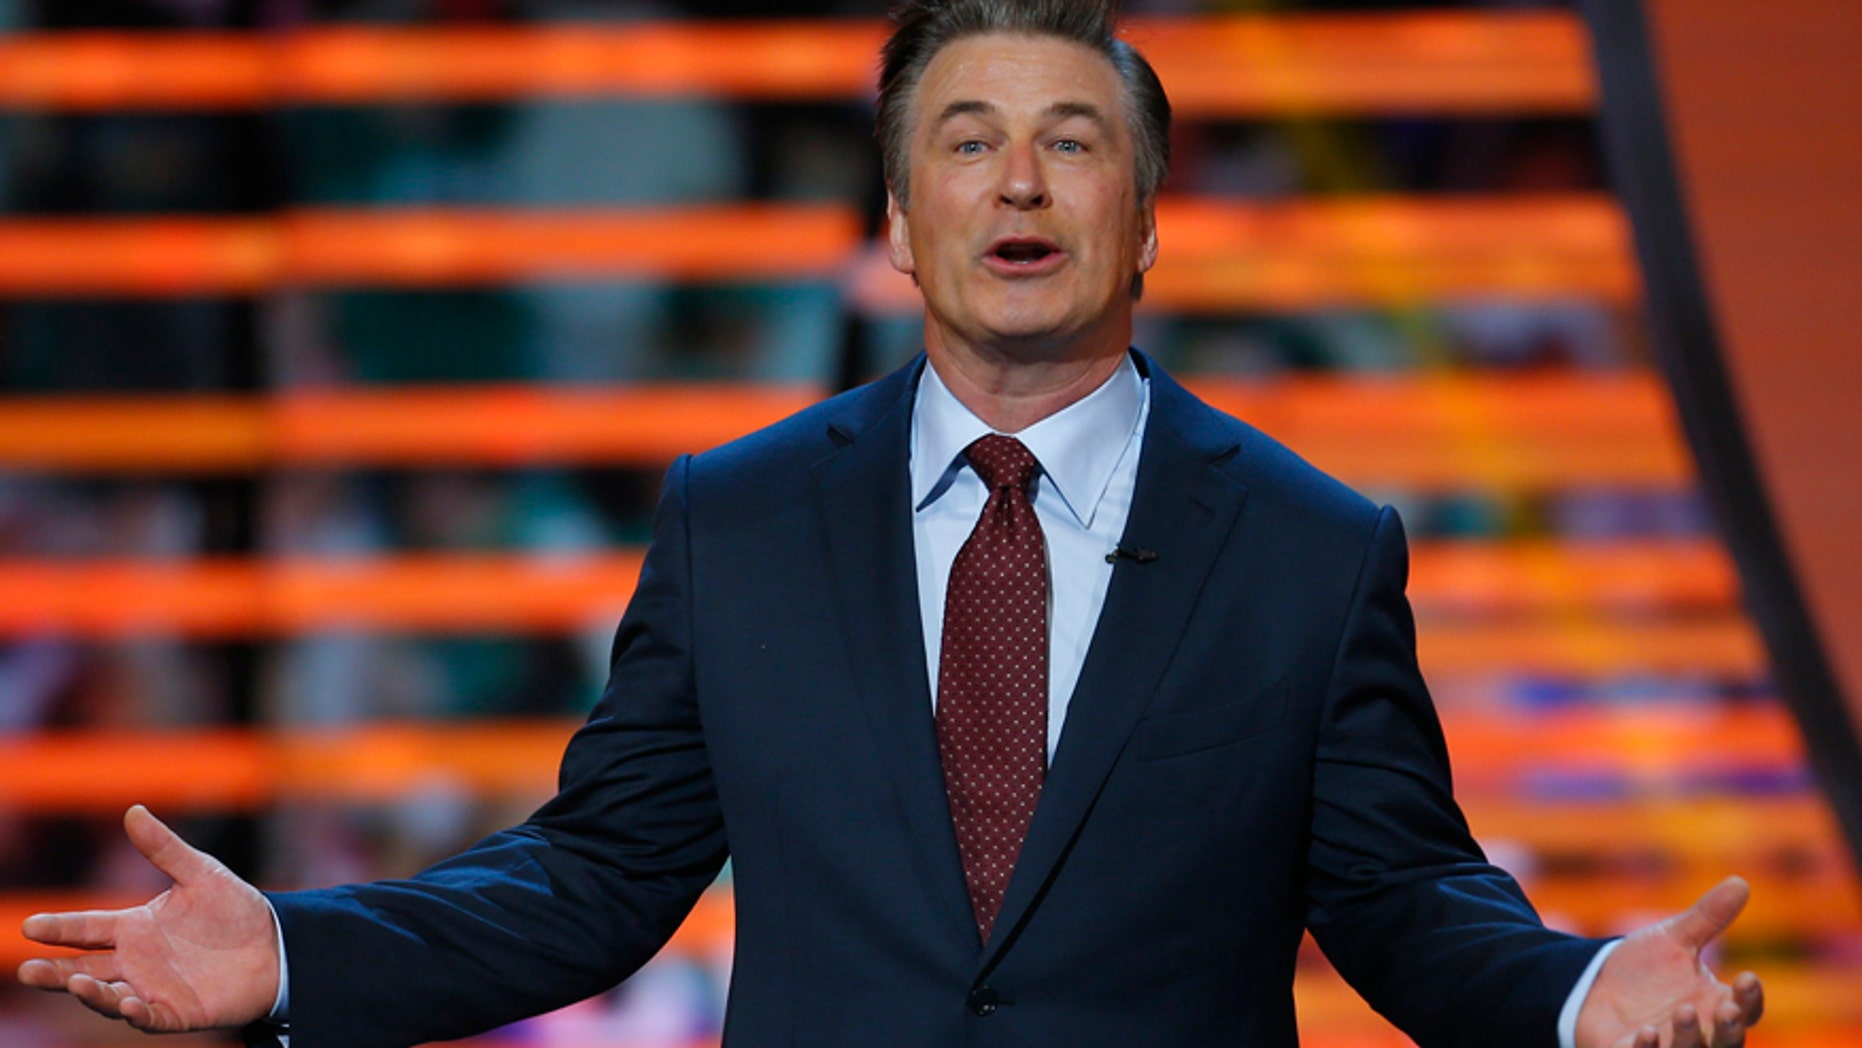 Host Alec Baldwin speaks during the NFL Honors award show in New Orleans, Louisiana February 2, 2013.   REUTERS/Jeff Haynes (UNITED STATES  - Tags: SPORT FOOTBALL ENTERTAINMENT)   - RTR3DABD